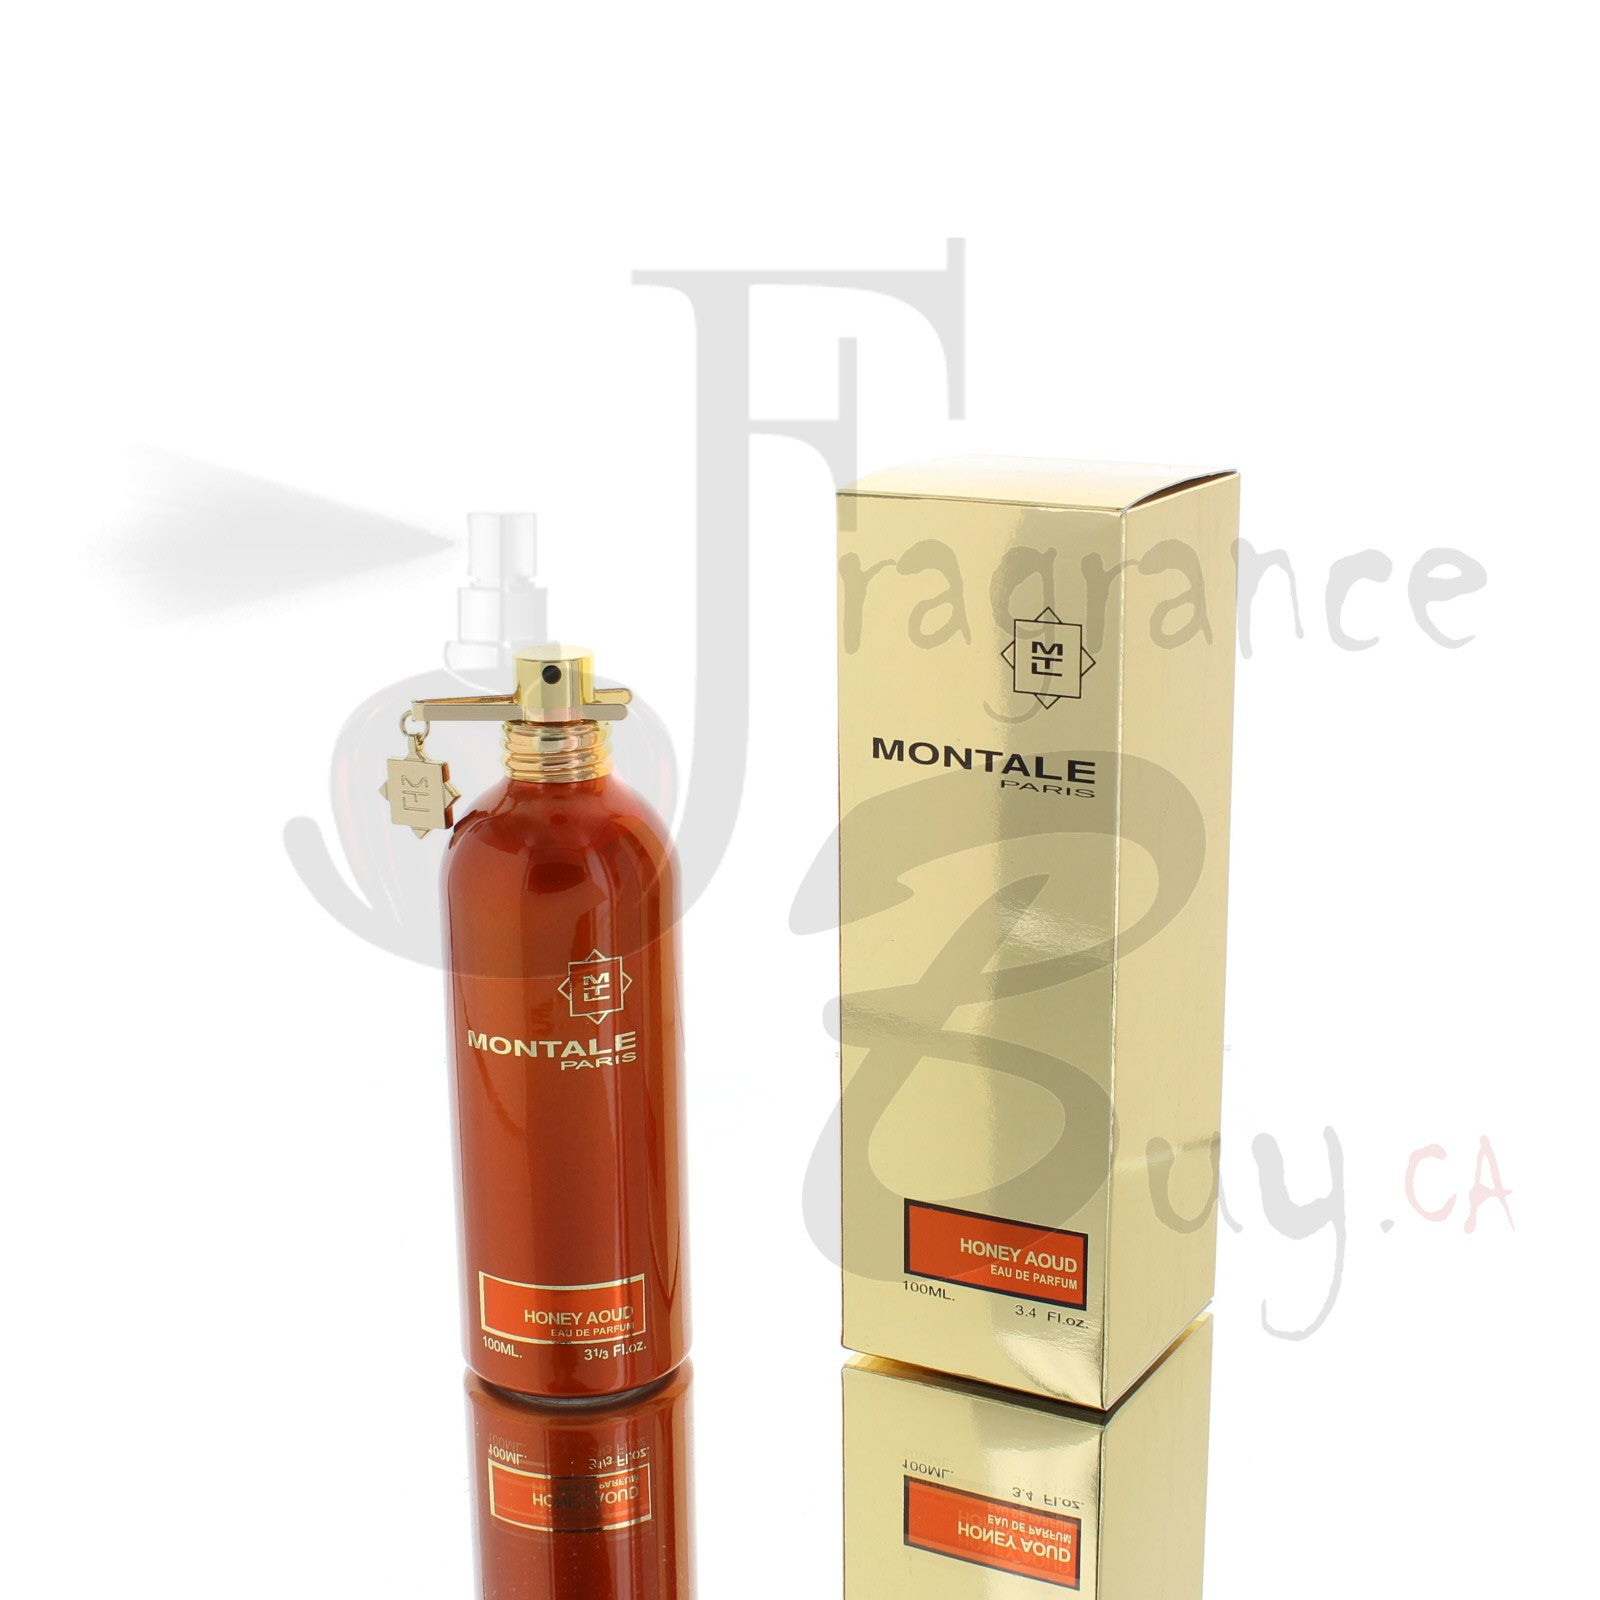 Montale Honey Aoud For Man/Woman